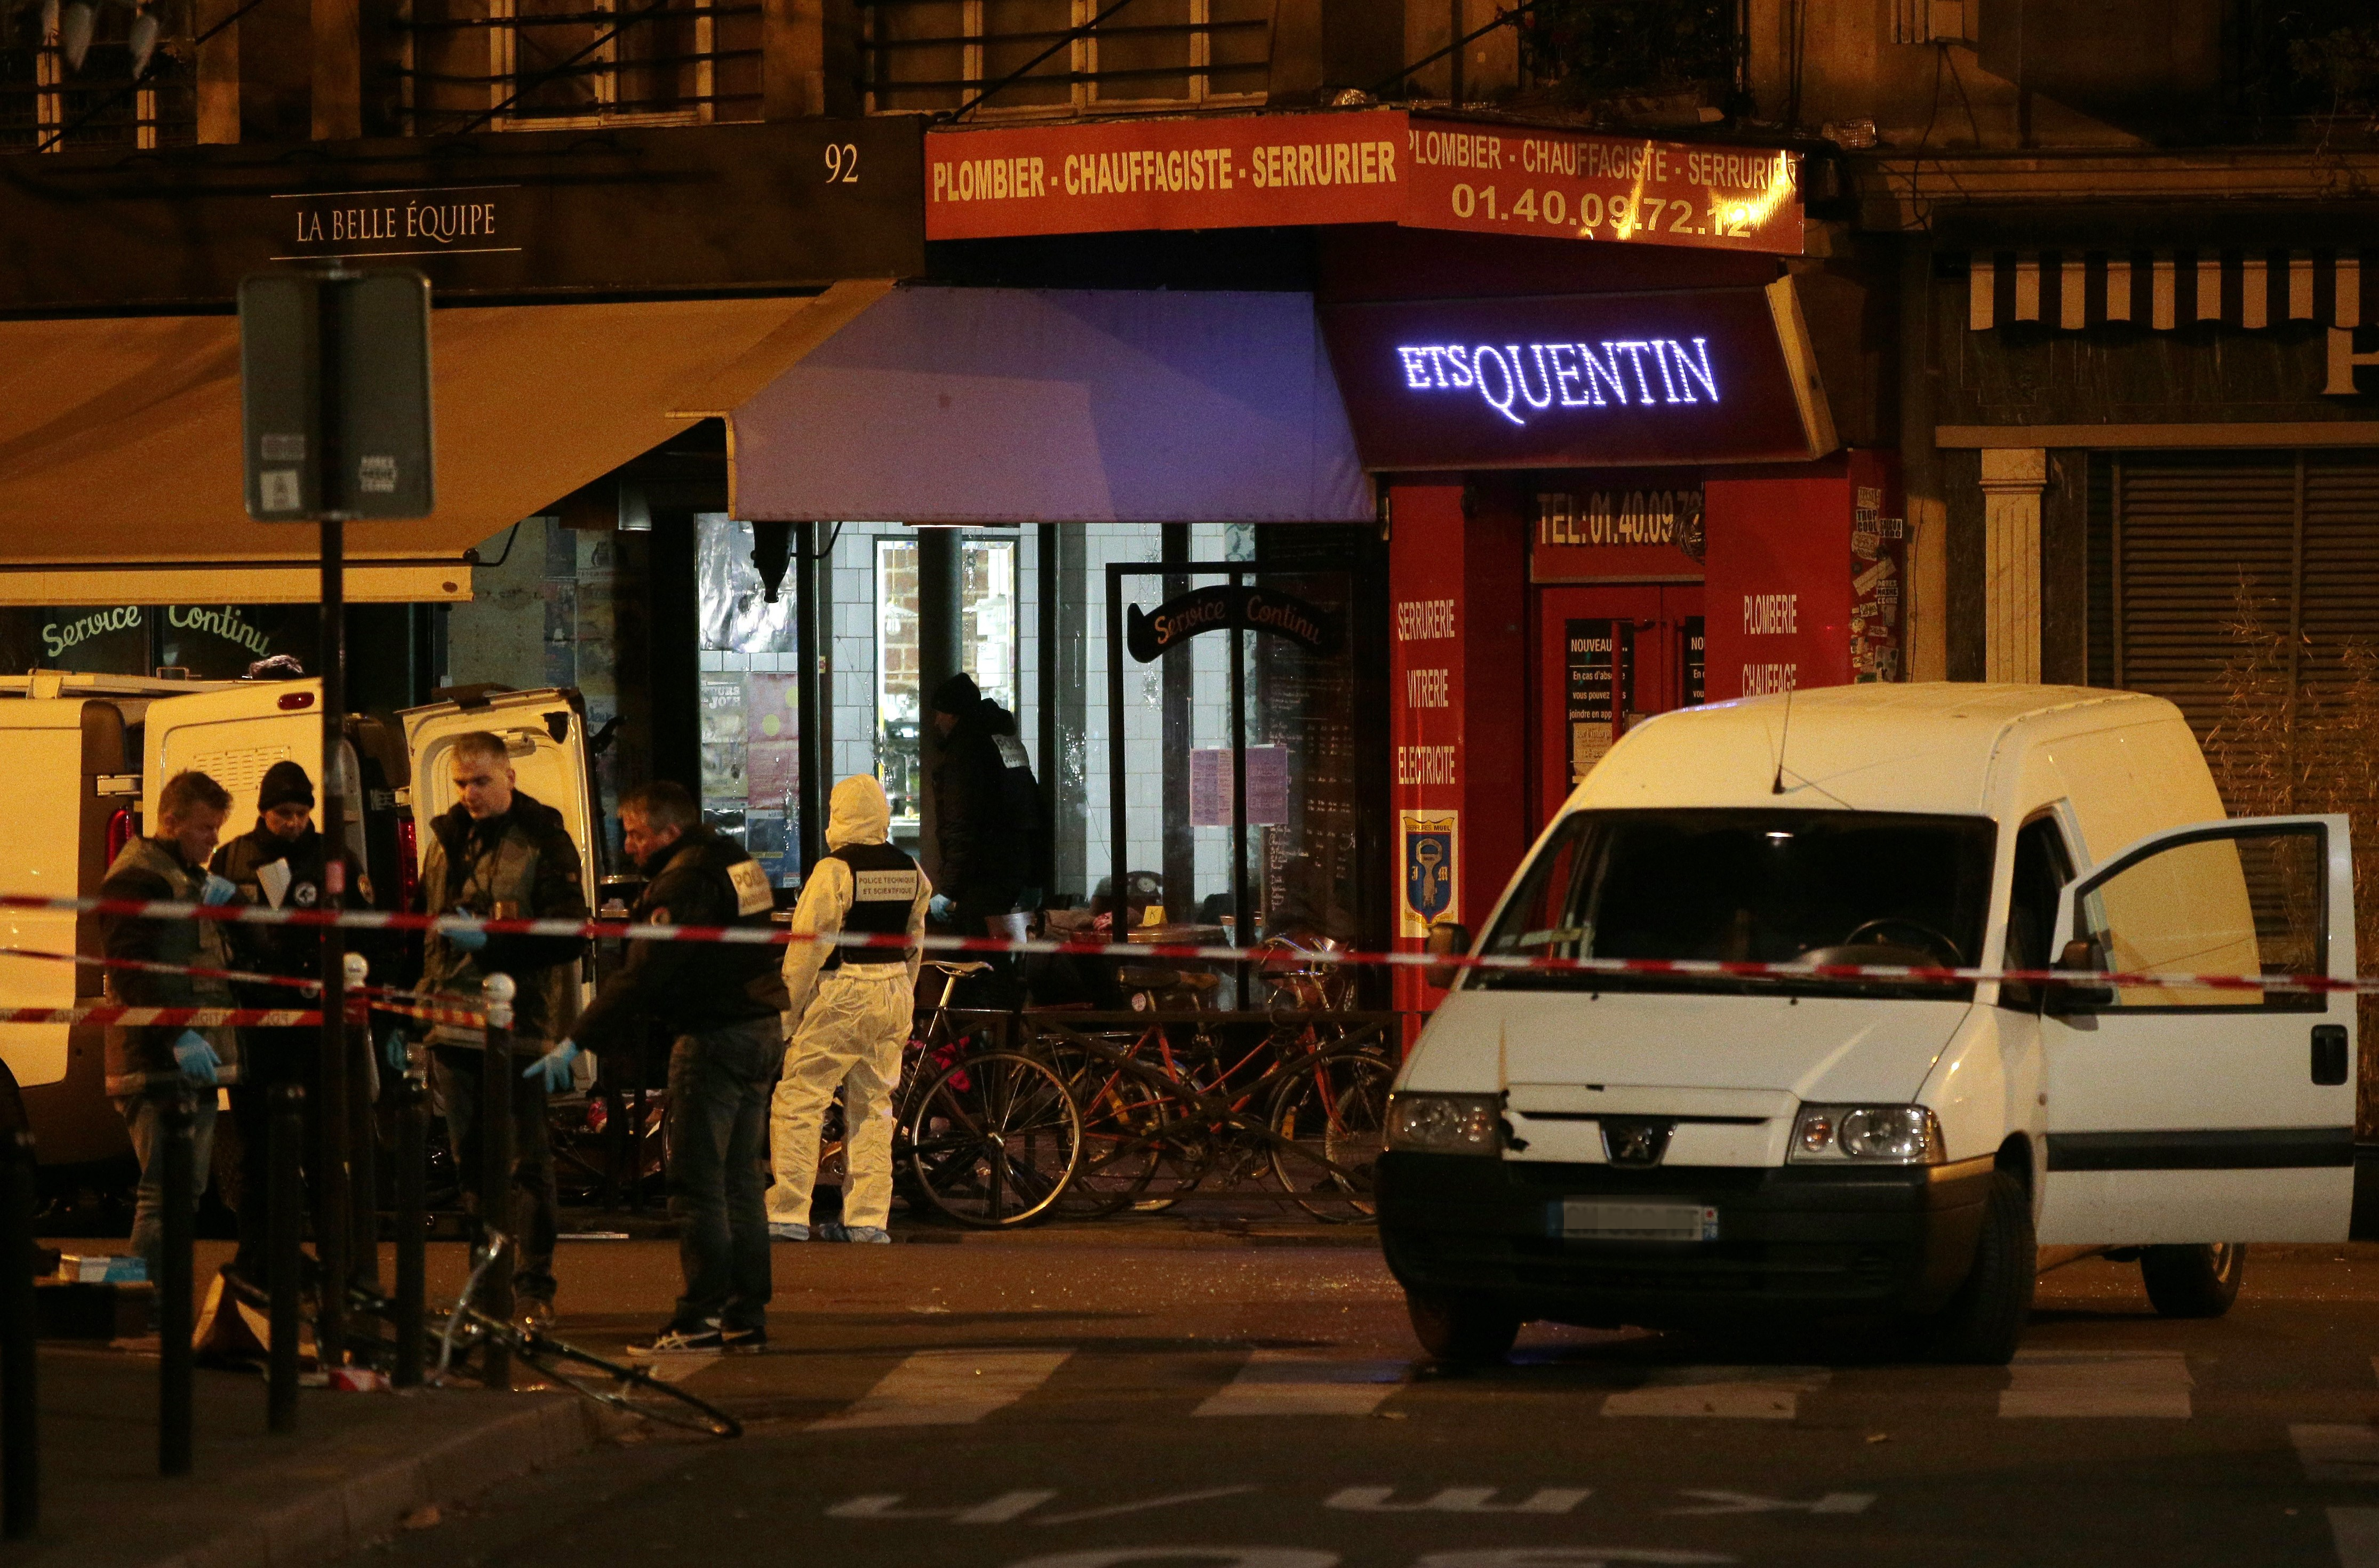 Forensic police search for evidences outside the La Belle Equipe cafe, rue de Charonne. (Getty)